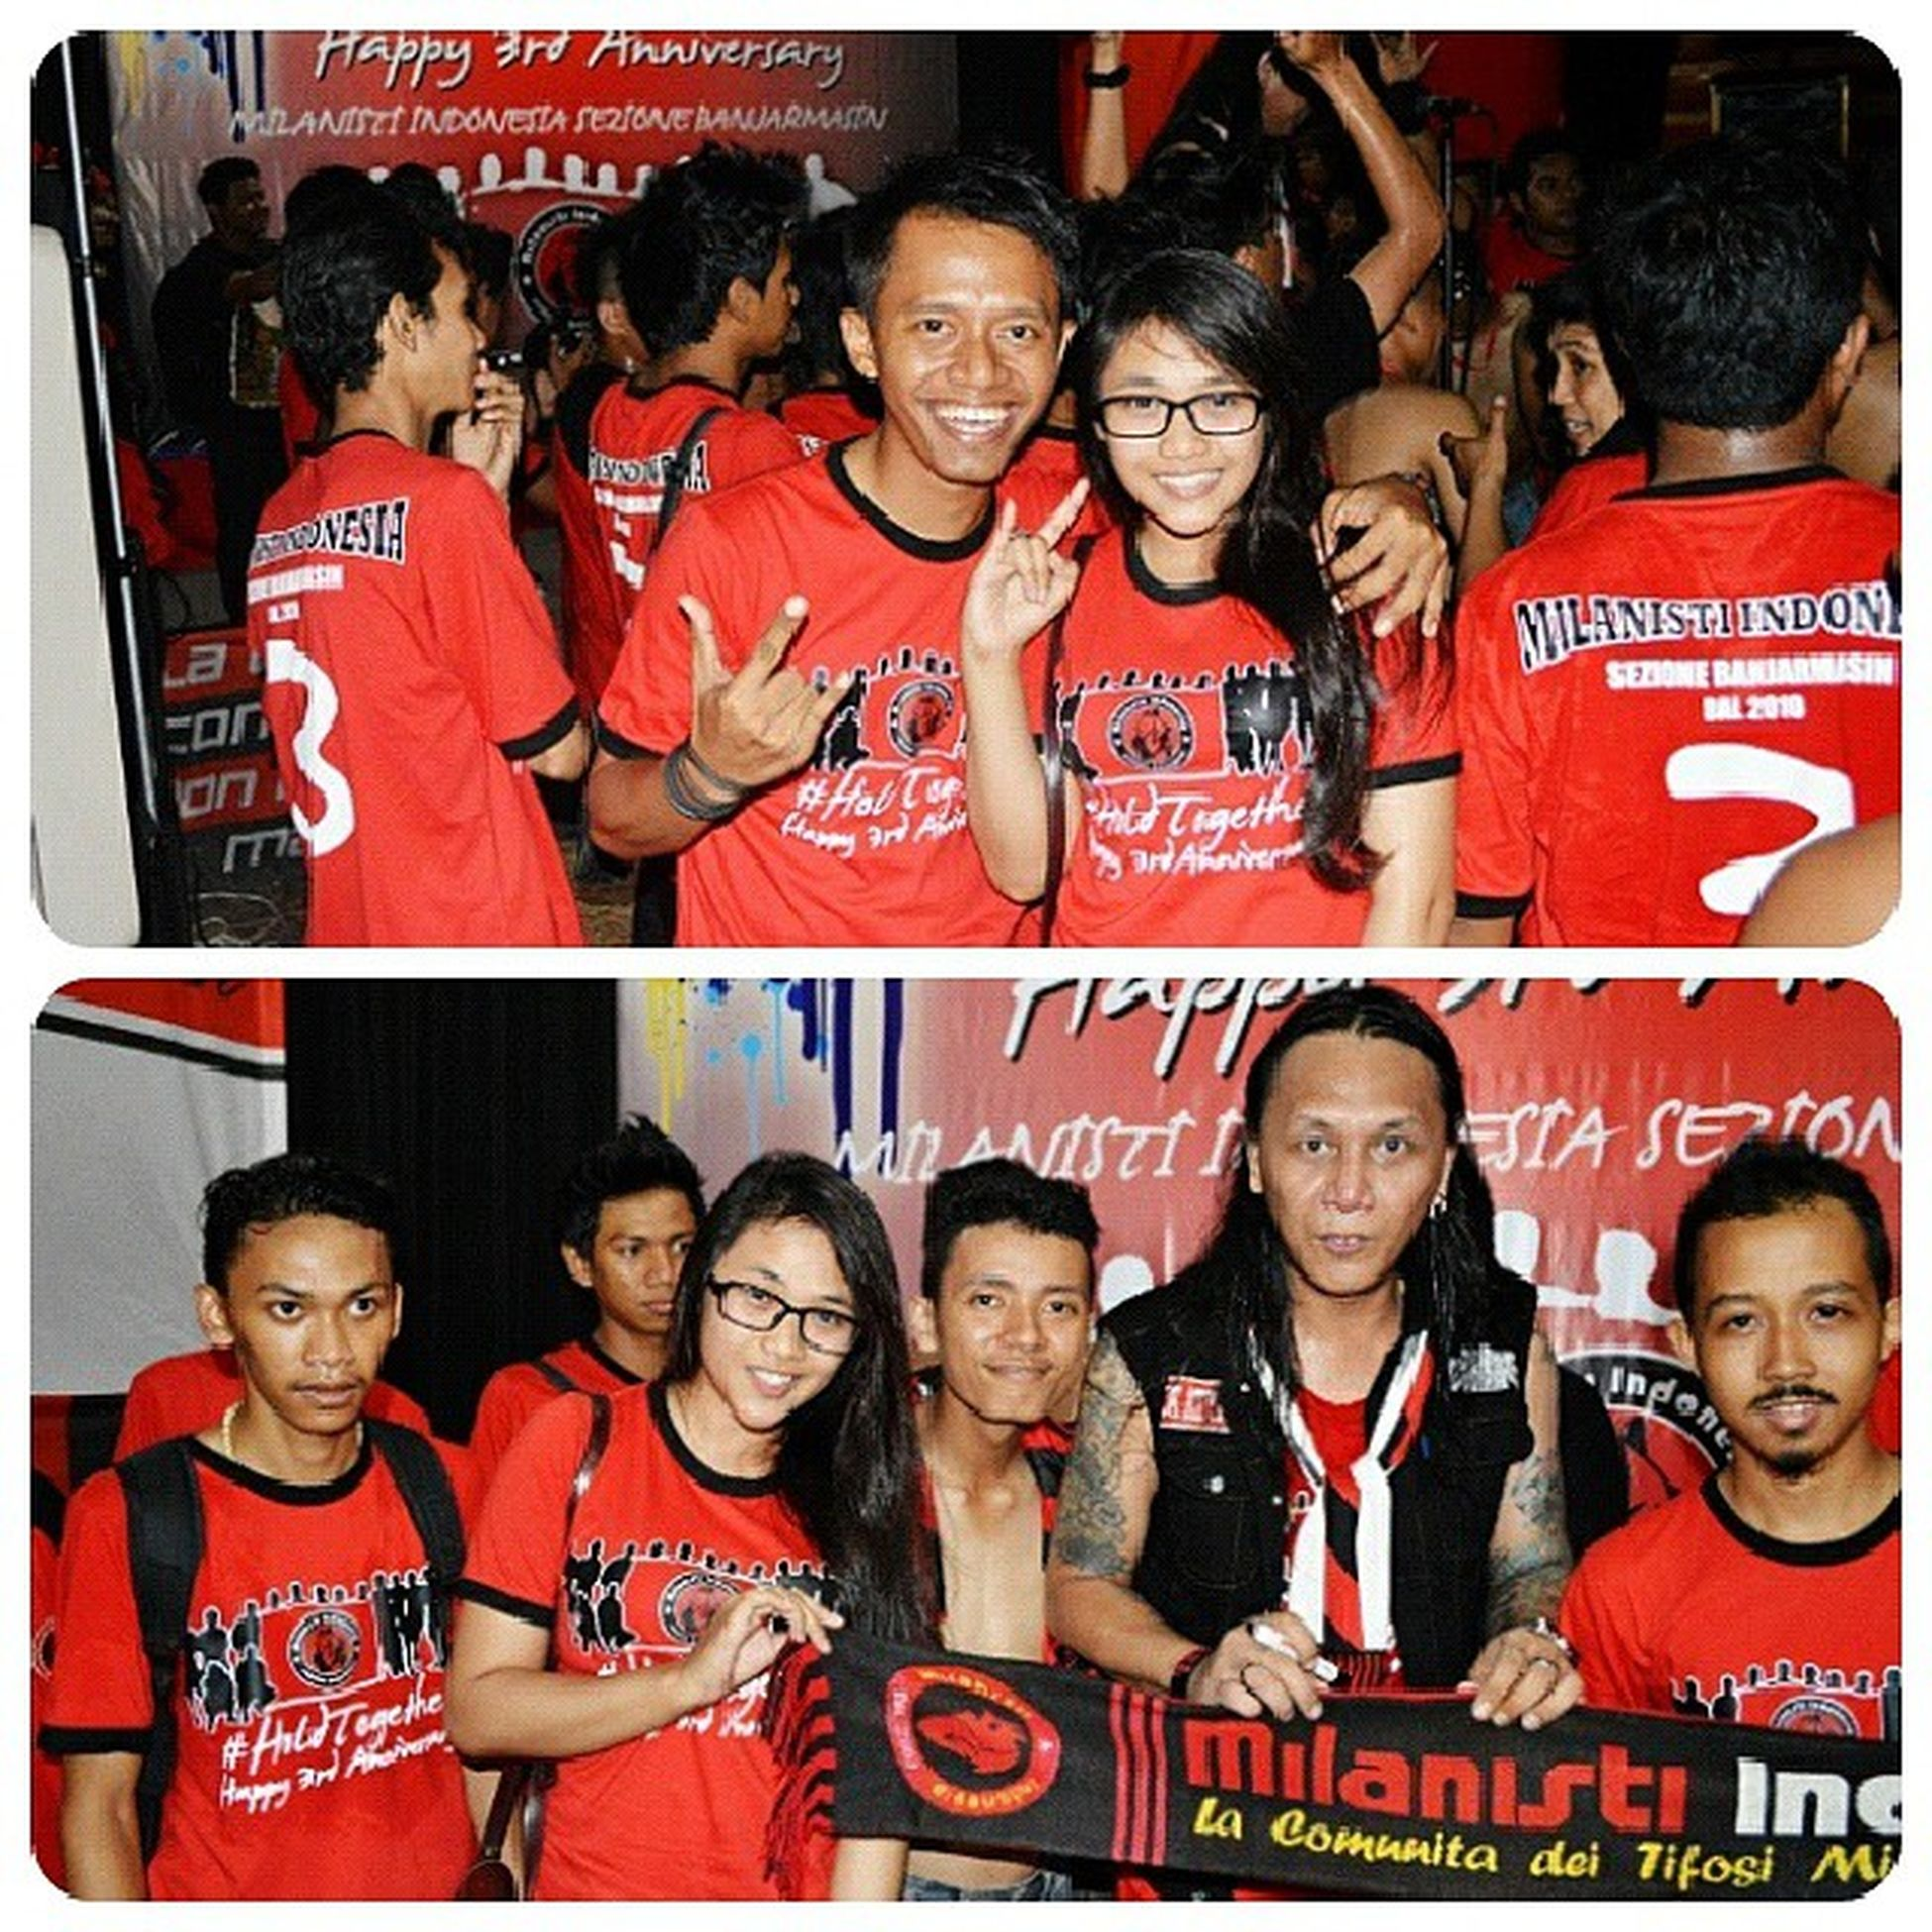 milanisti bjm, my boy+om Roy HoldTogether Happy Anniversary Milanisti indonesia sezione banjarmasin black red